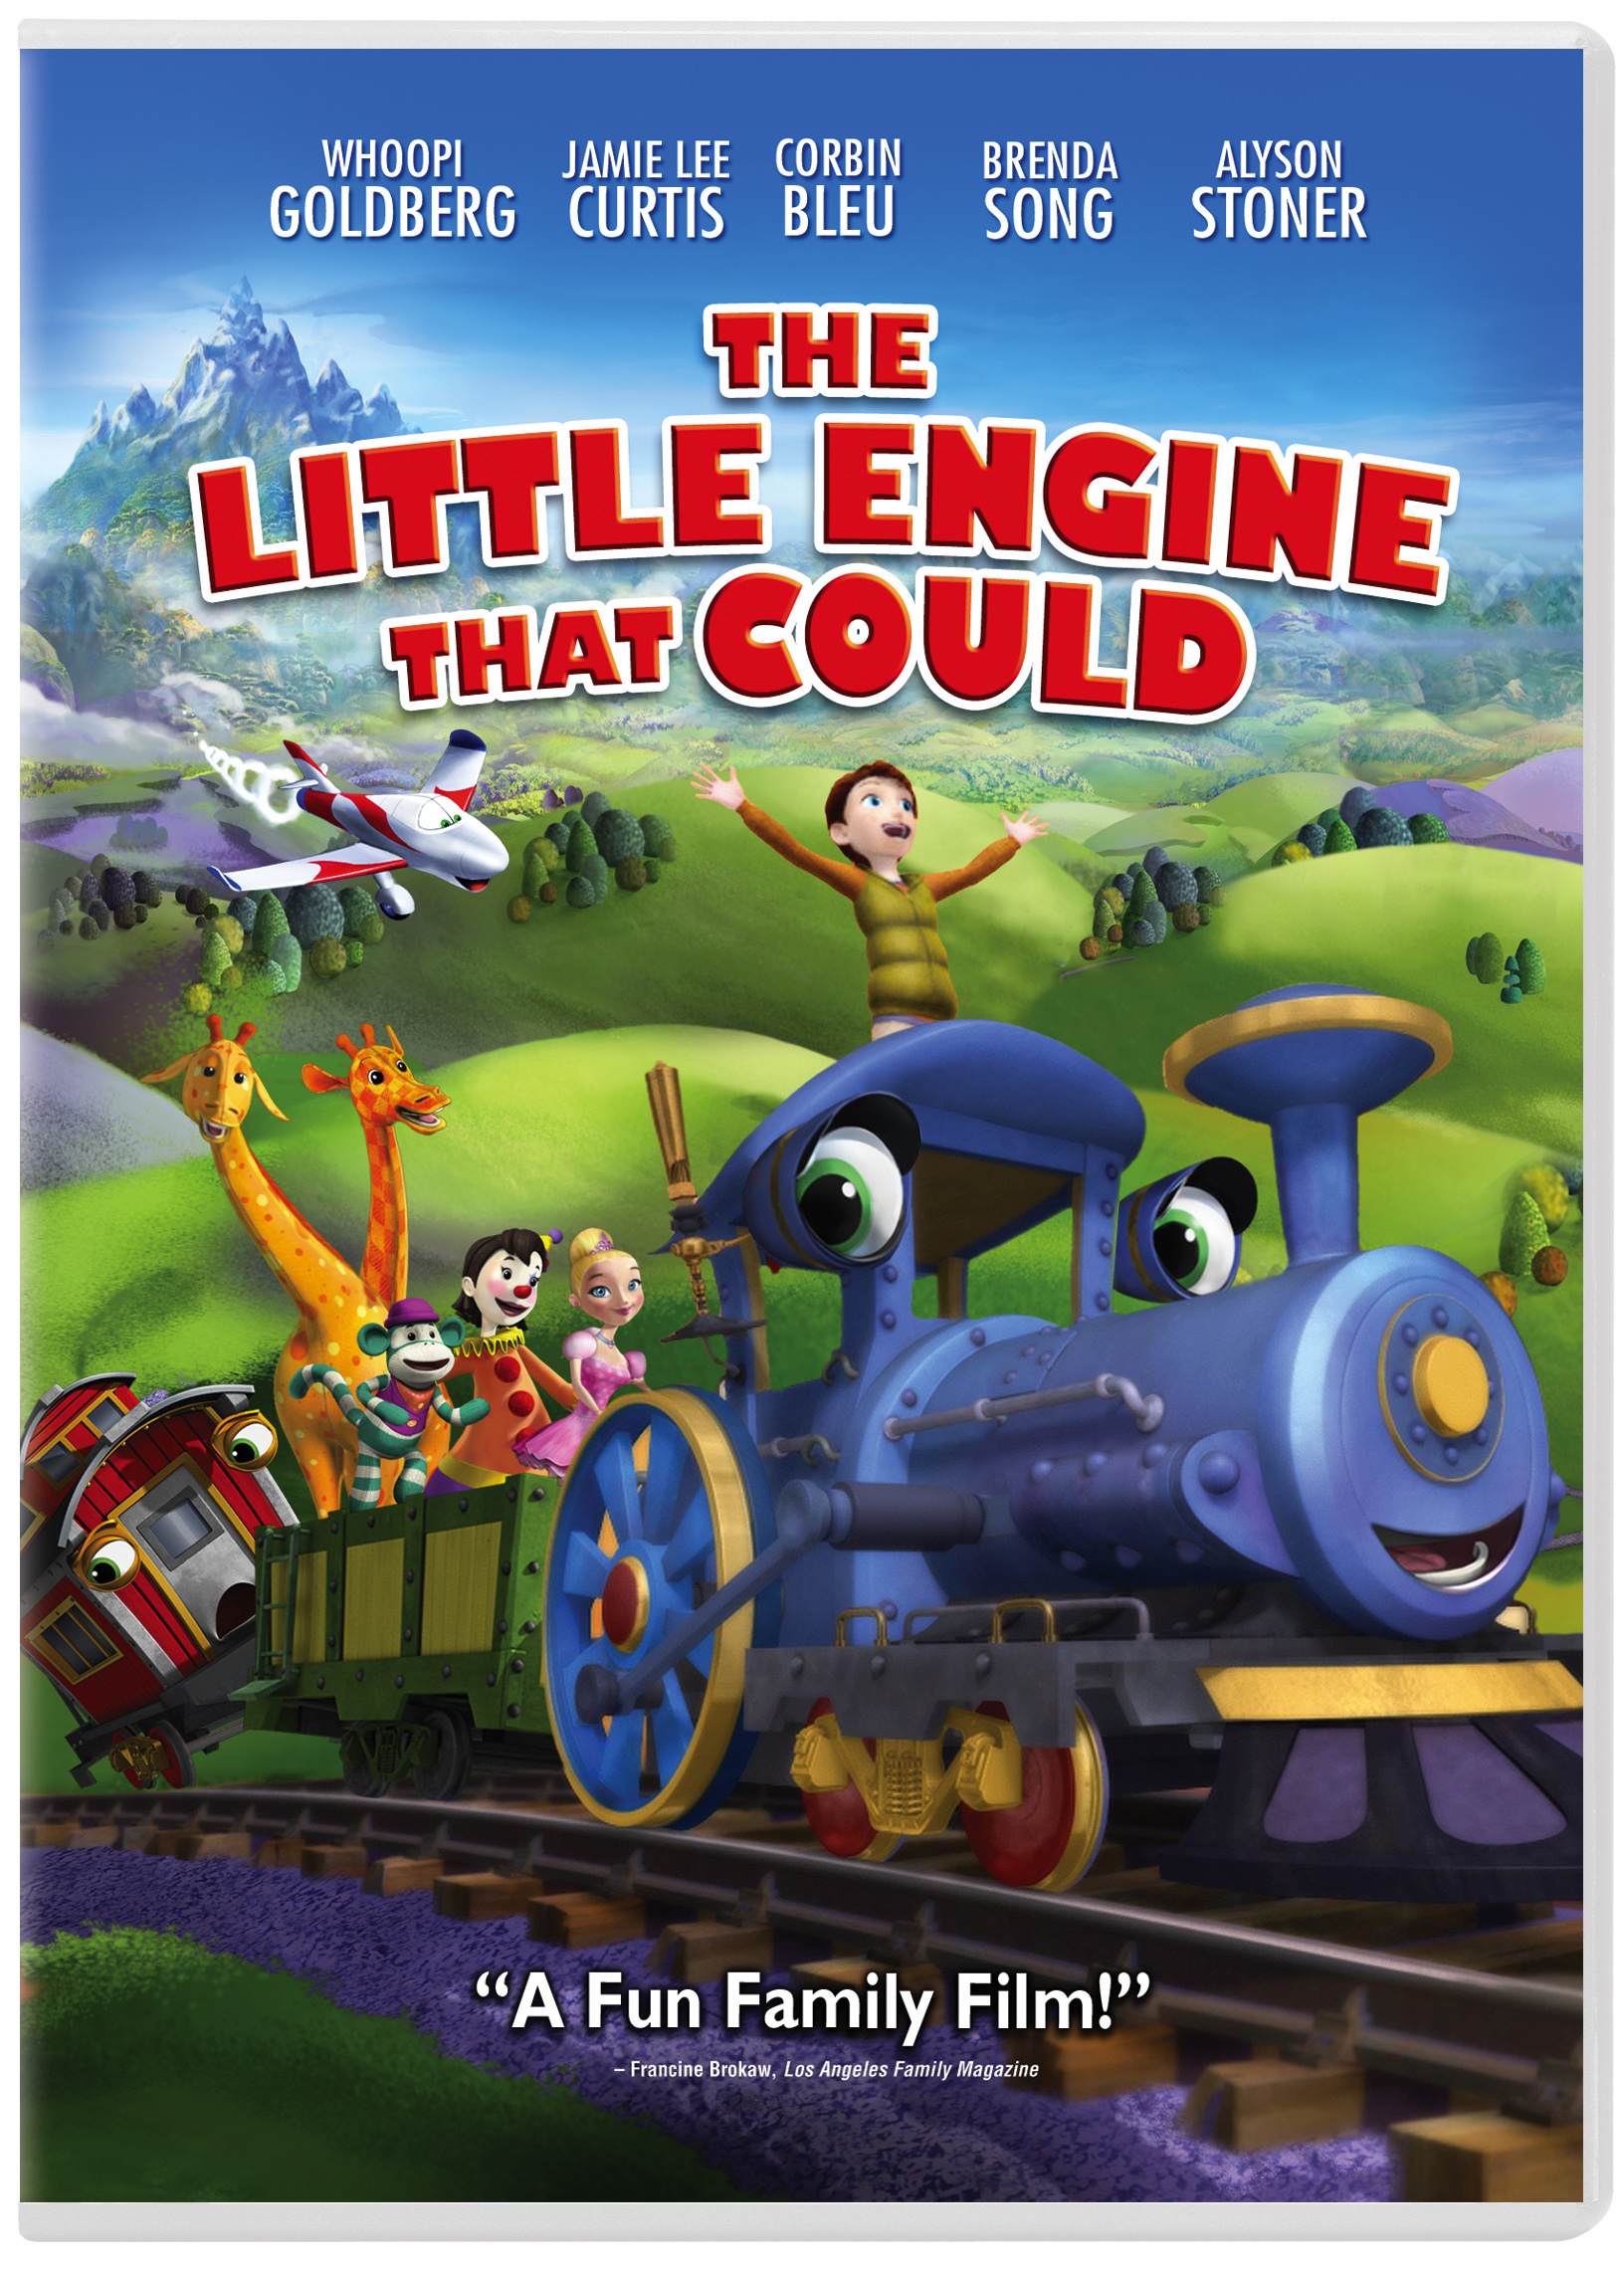 the little engine that could 2011 movie